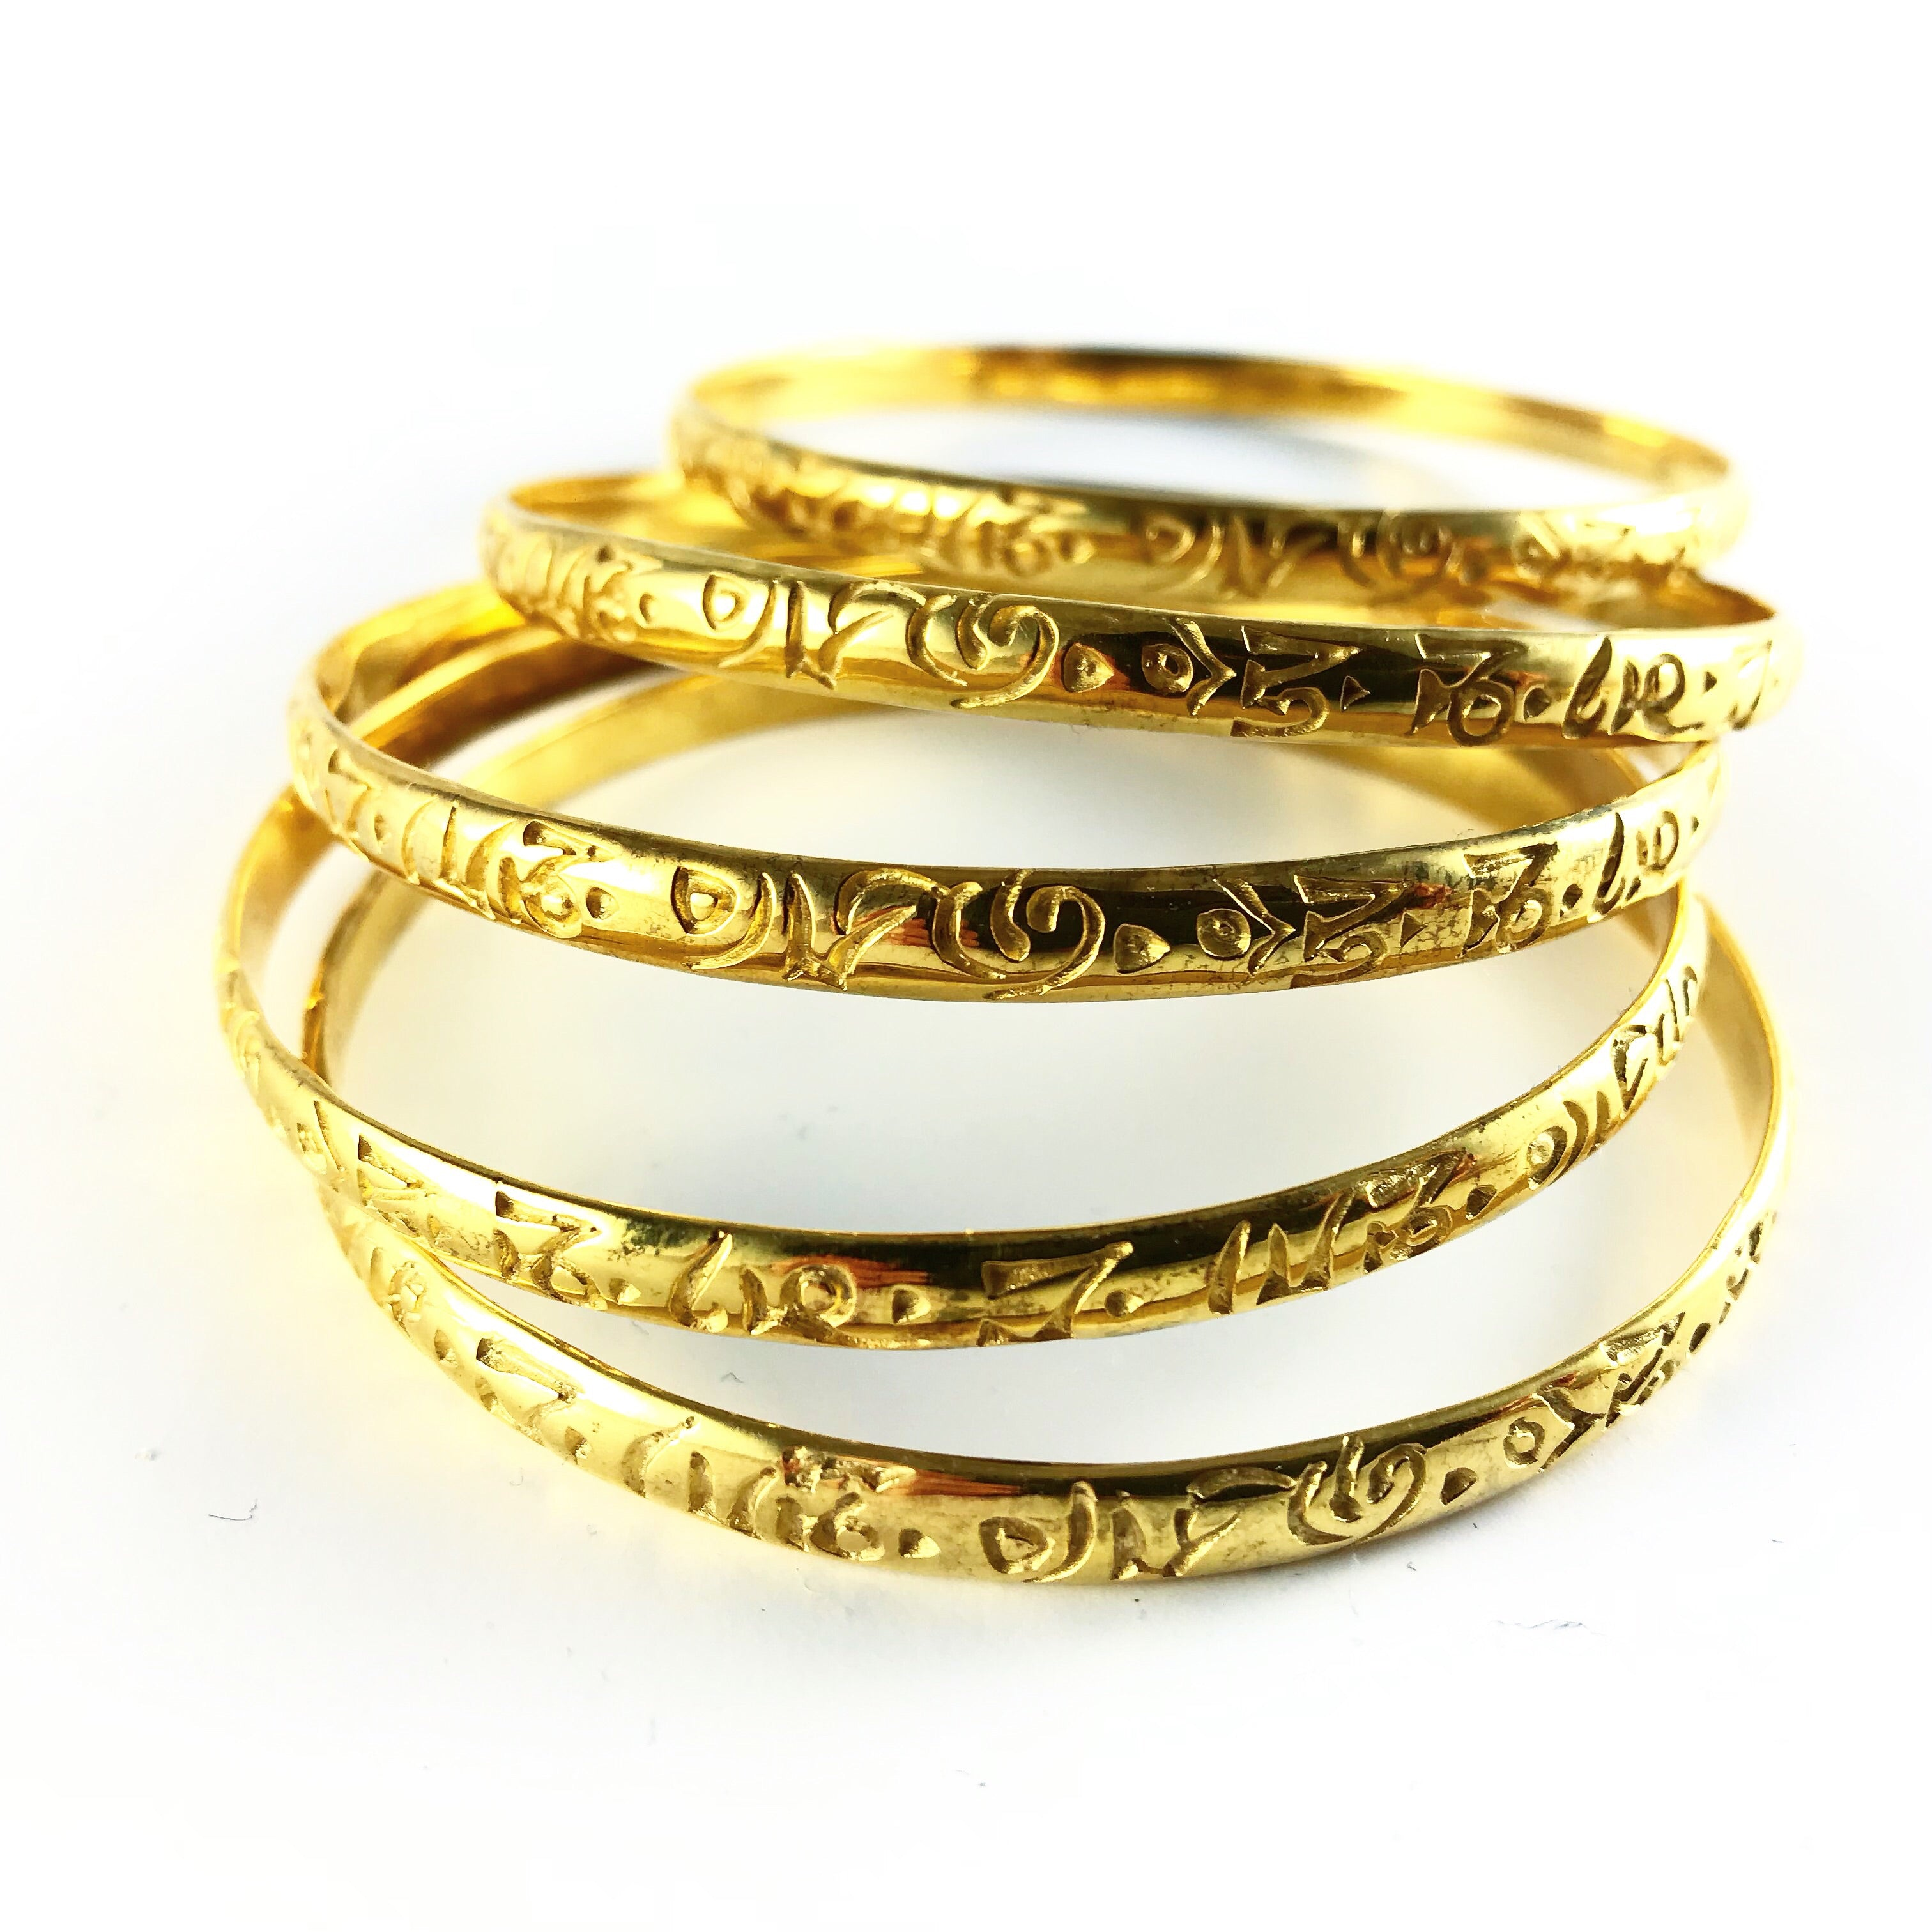 CARVED OM MANI PADME HUM GOLD BANGLE